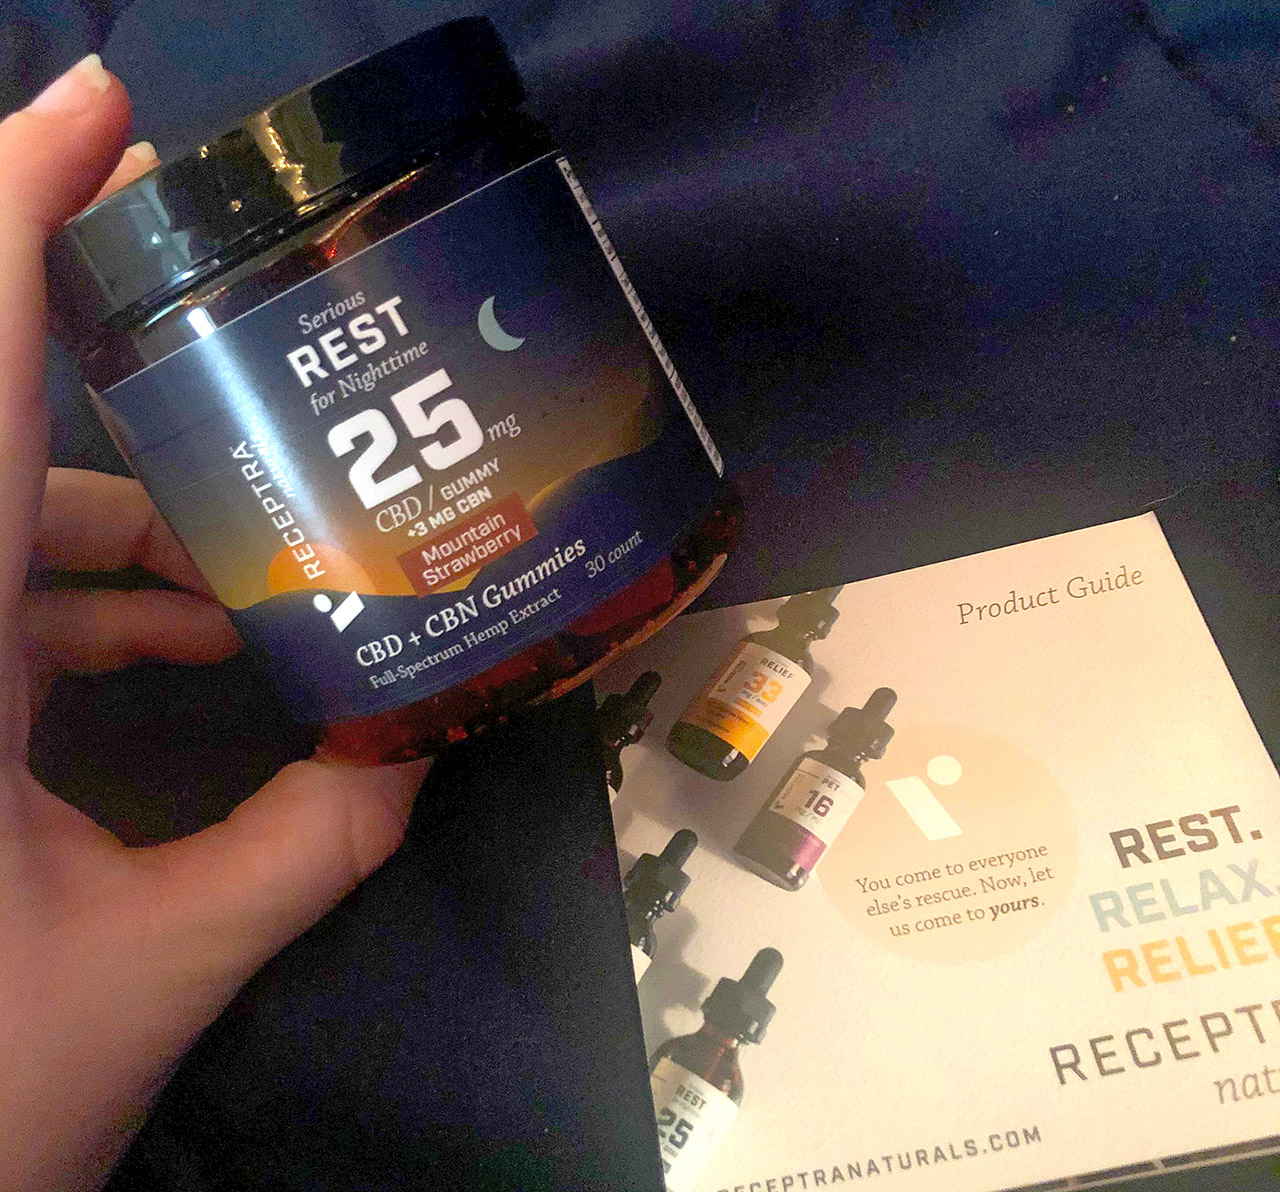 Receptra Naturals Serious Rest Gummies: CBD + CBN Gummies